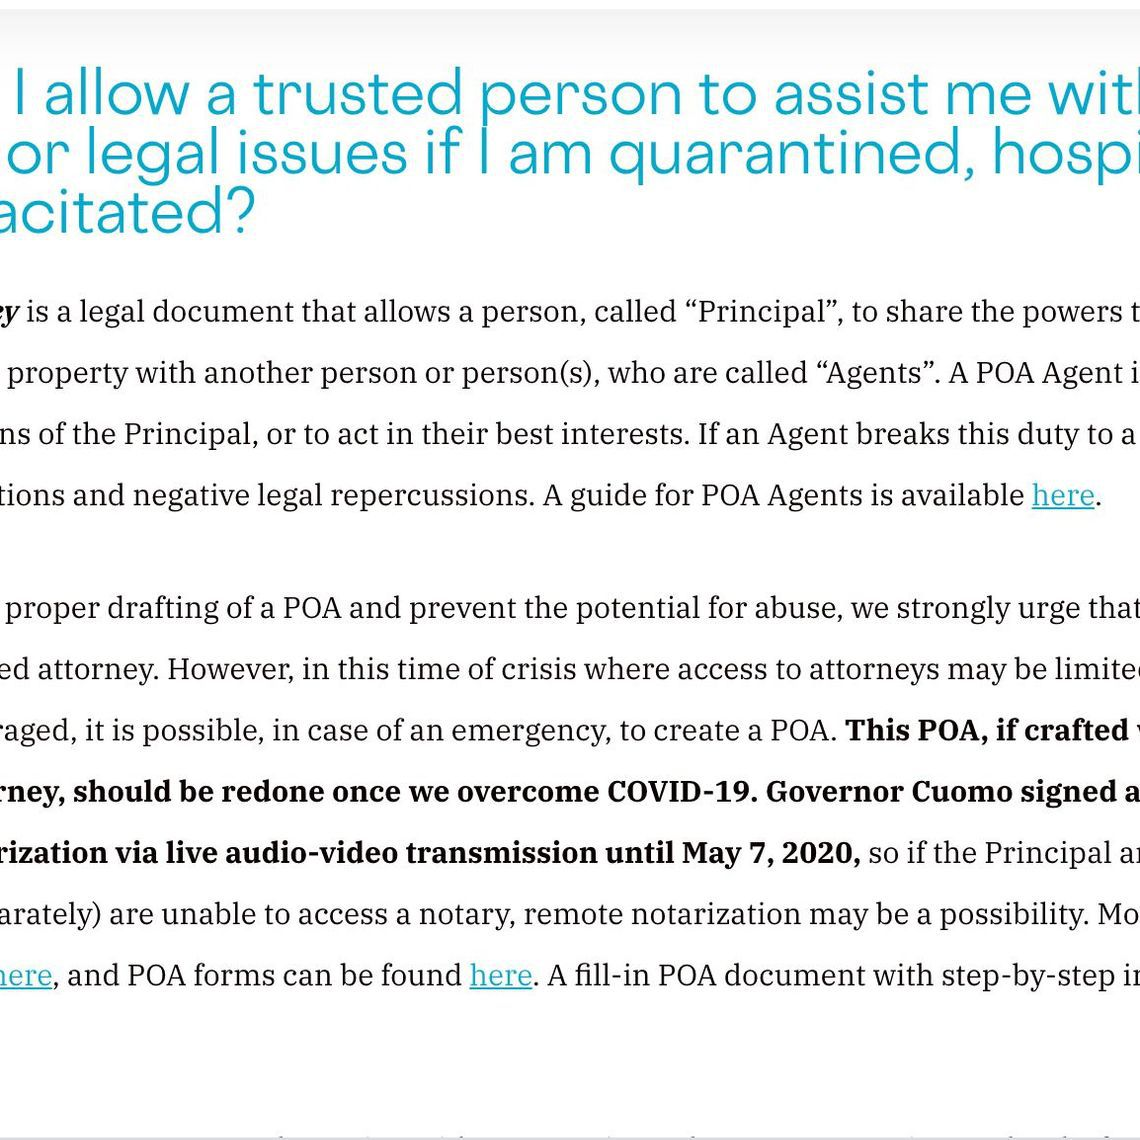 A description of how to get power of attorney for a loved one.